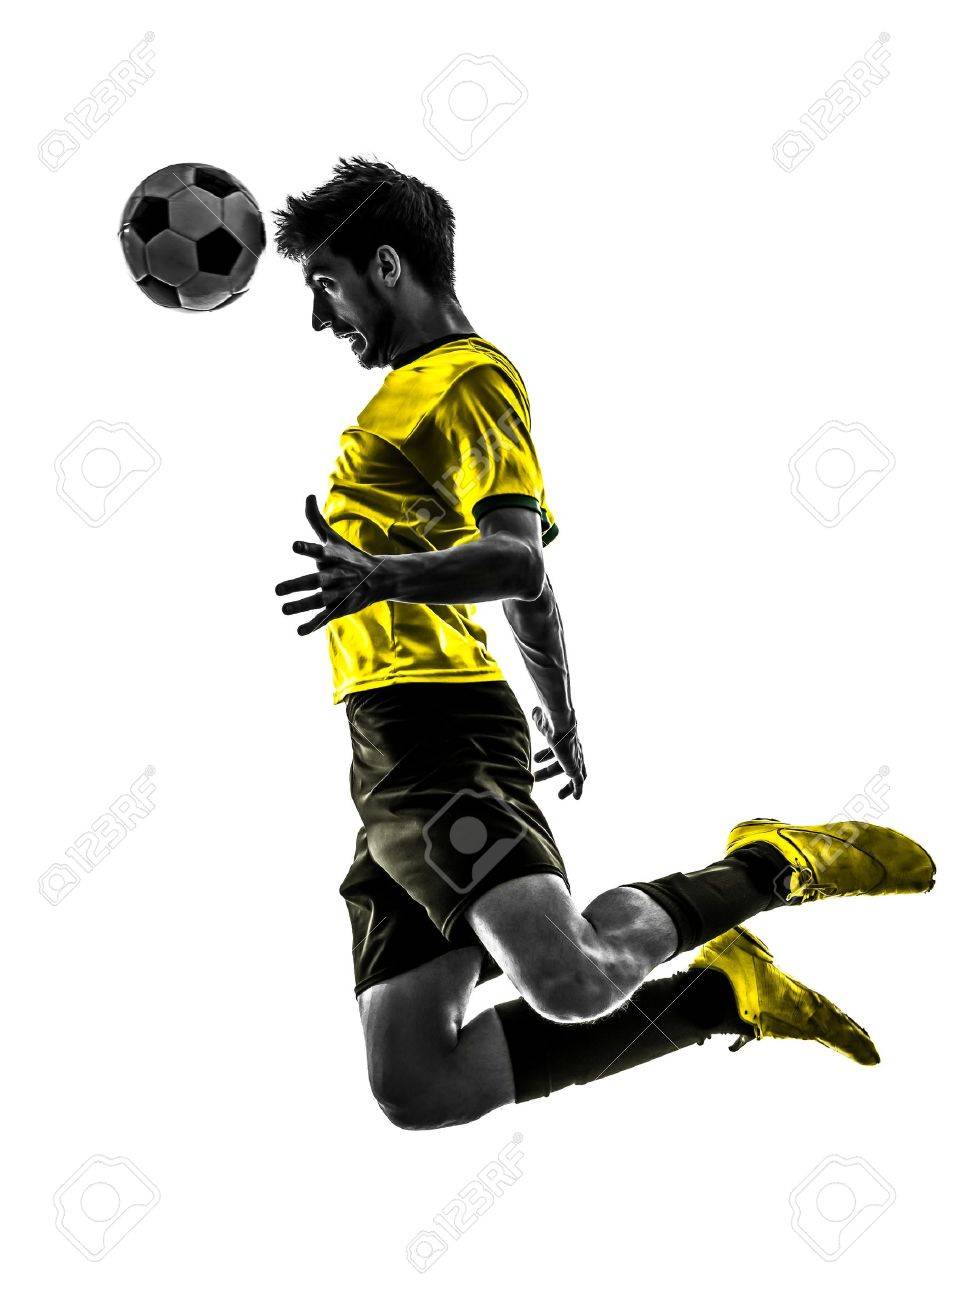 one brazilian soccer football player young man heading in silhouette studio  on white background Stock Photo - 19754974